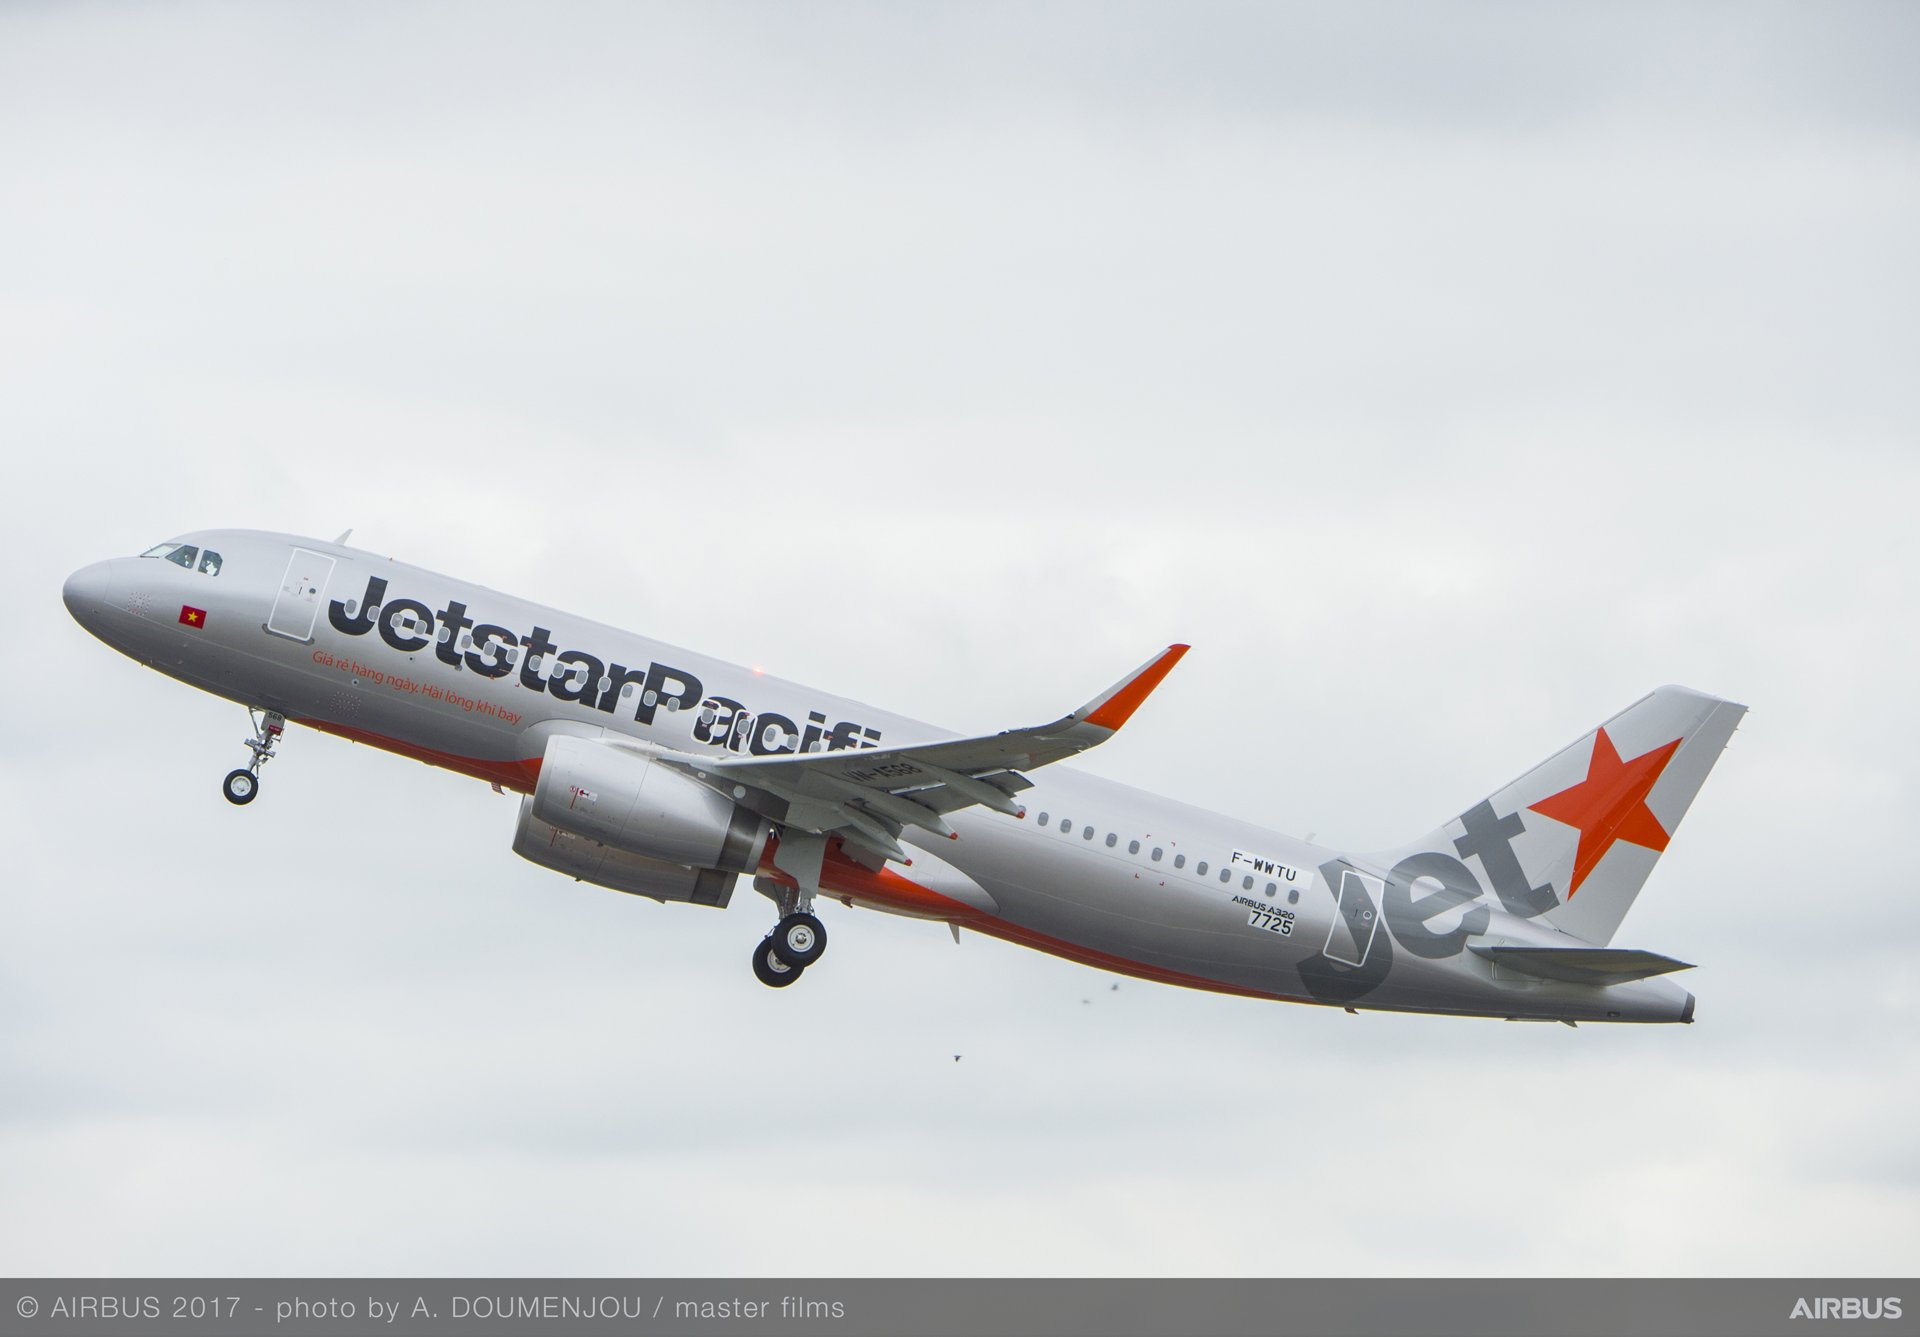 A320 Jetstar Pacific take off